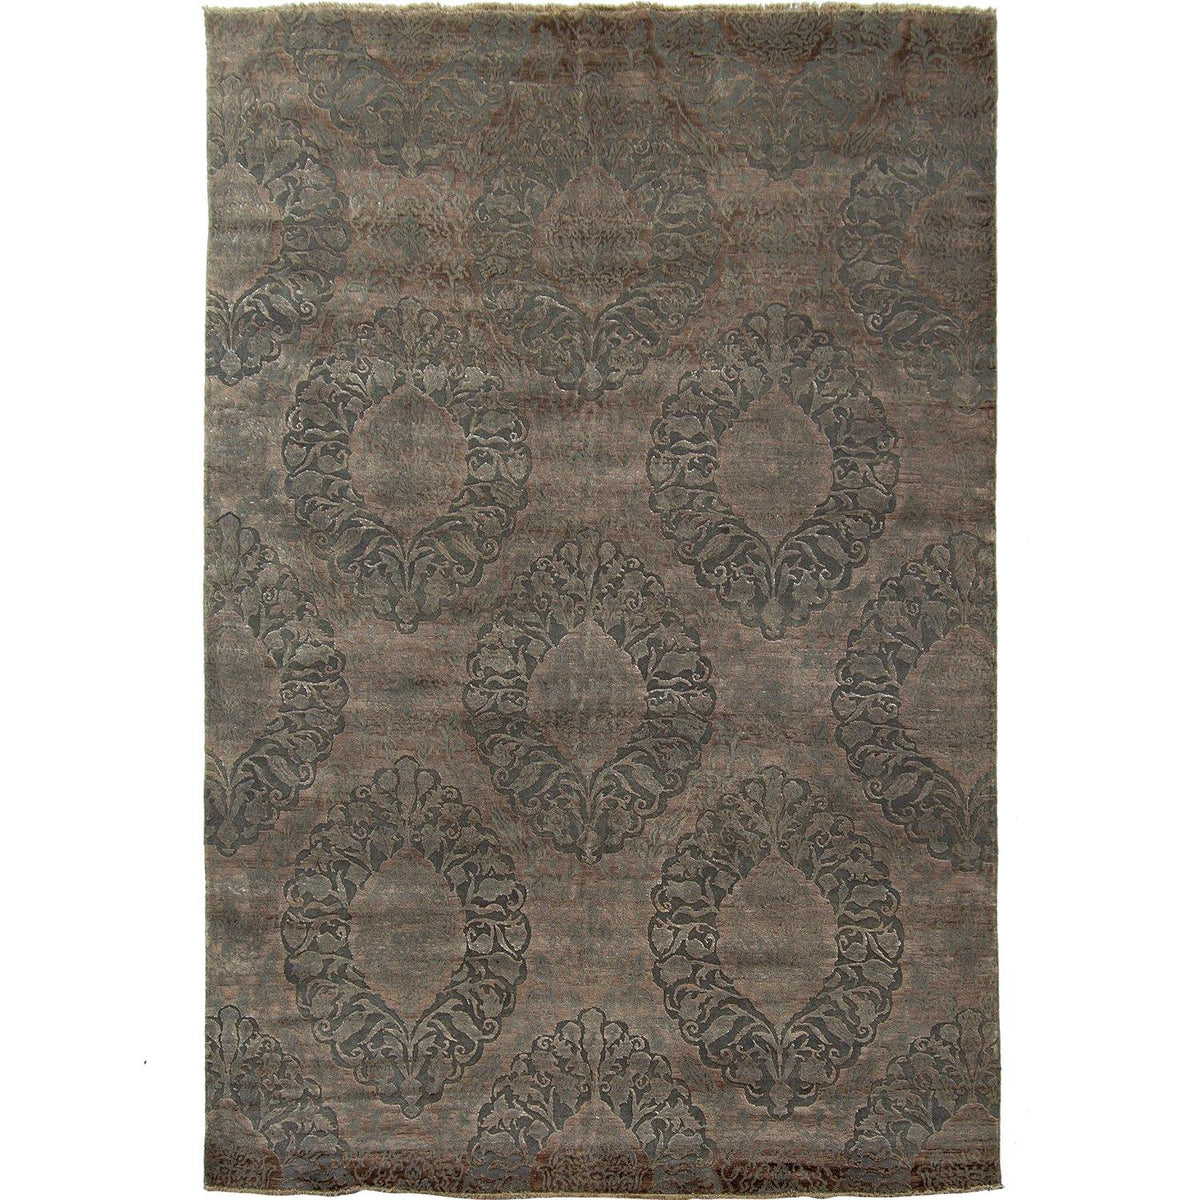 Fine Contemporary Hand-knotted NZ Wool Rug 199cm x 303cm